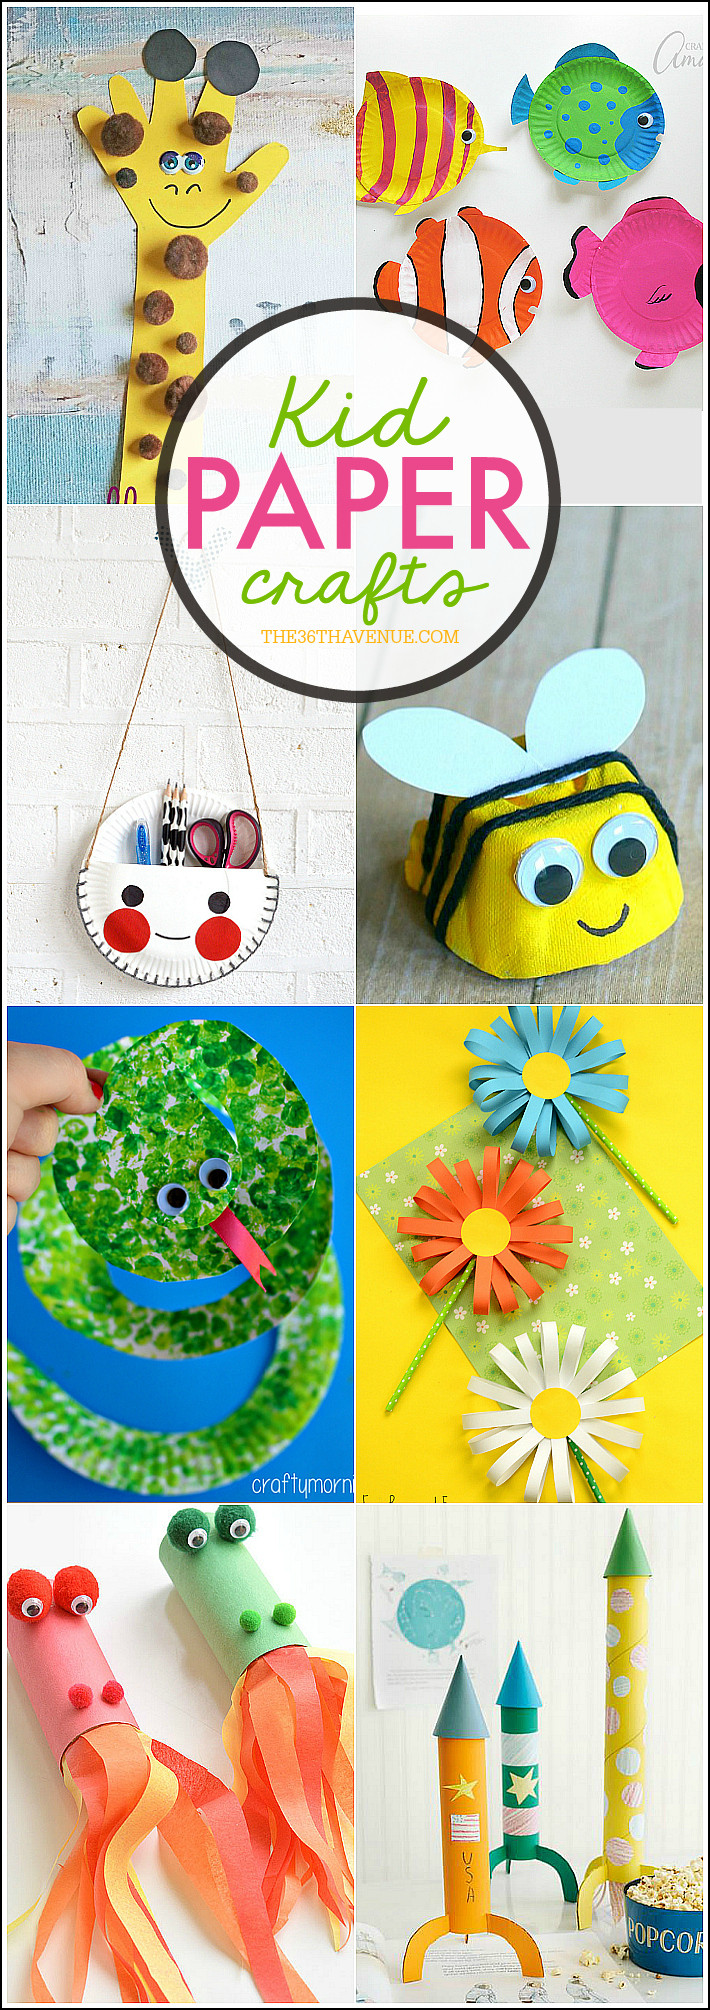 Best ideas about Craft Ideas Kids . Save or Pin Kid Paper Crafts The 36th AVENUE Now.